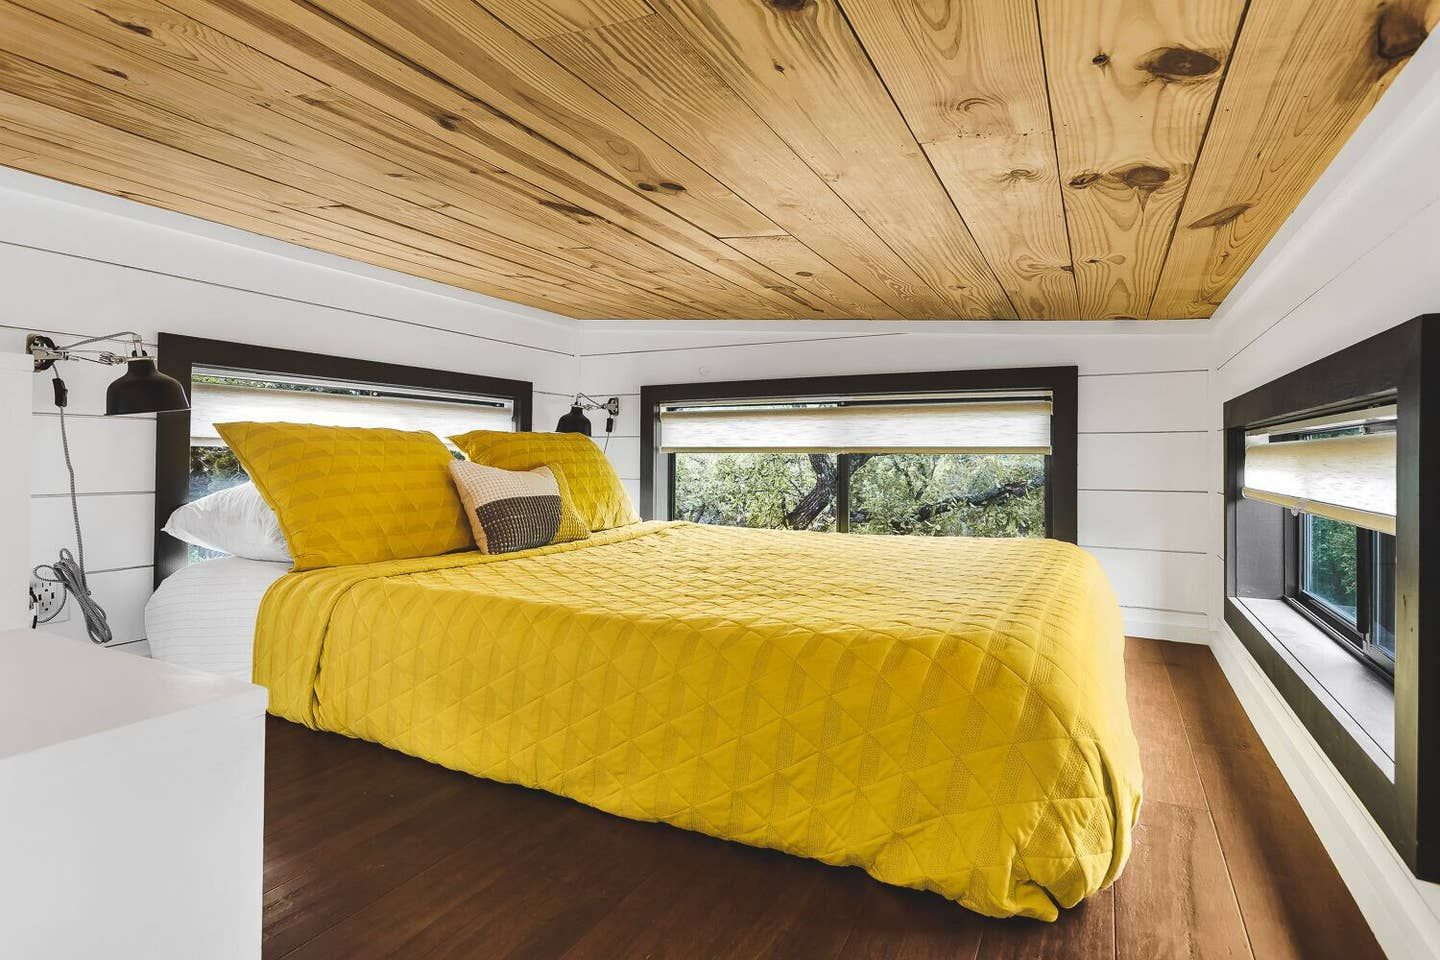 20 Tiny Houses in Texas You Can Rent on Airbnb in 2020! in